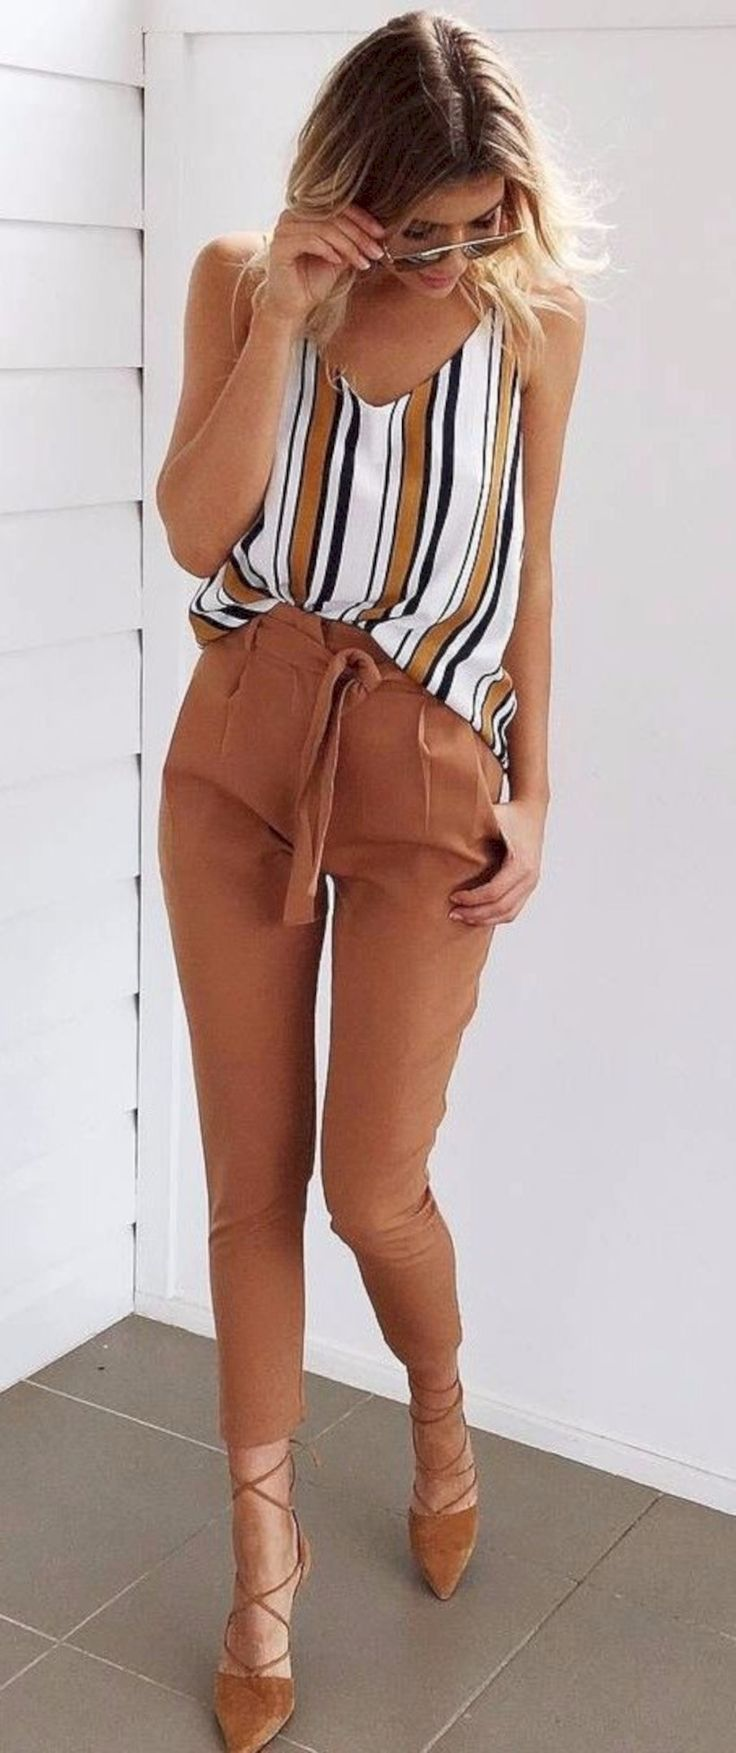 nice 34 Casual Chic Outfit Ideas for Summer http://attirepin.com/2018/02/22/34-casual-chic-outfit-ideas-summer/